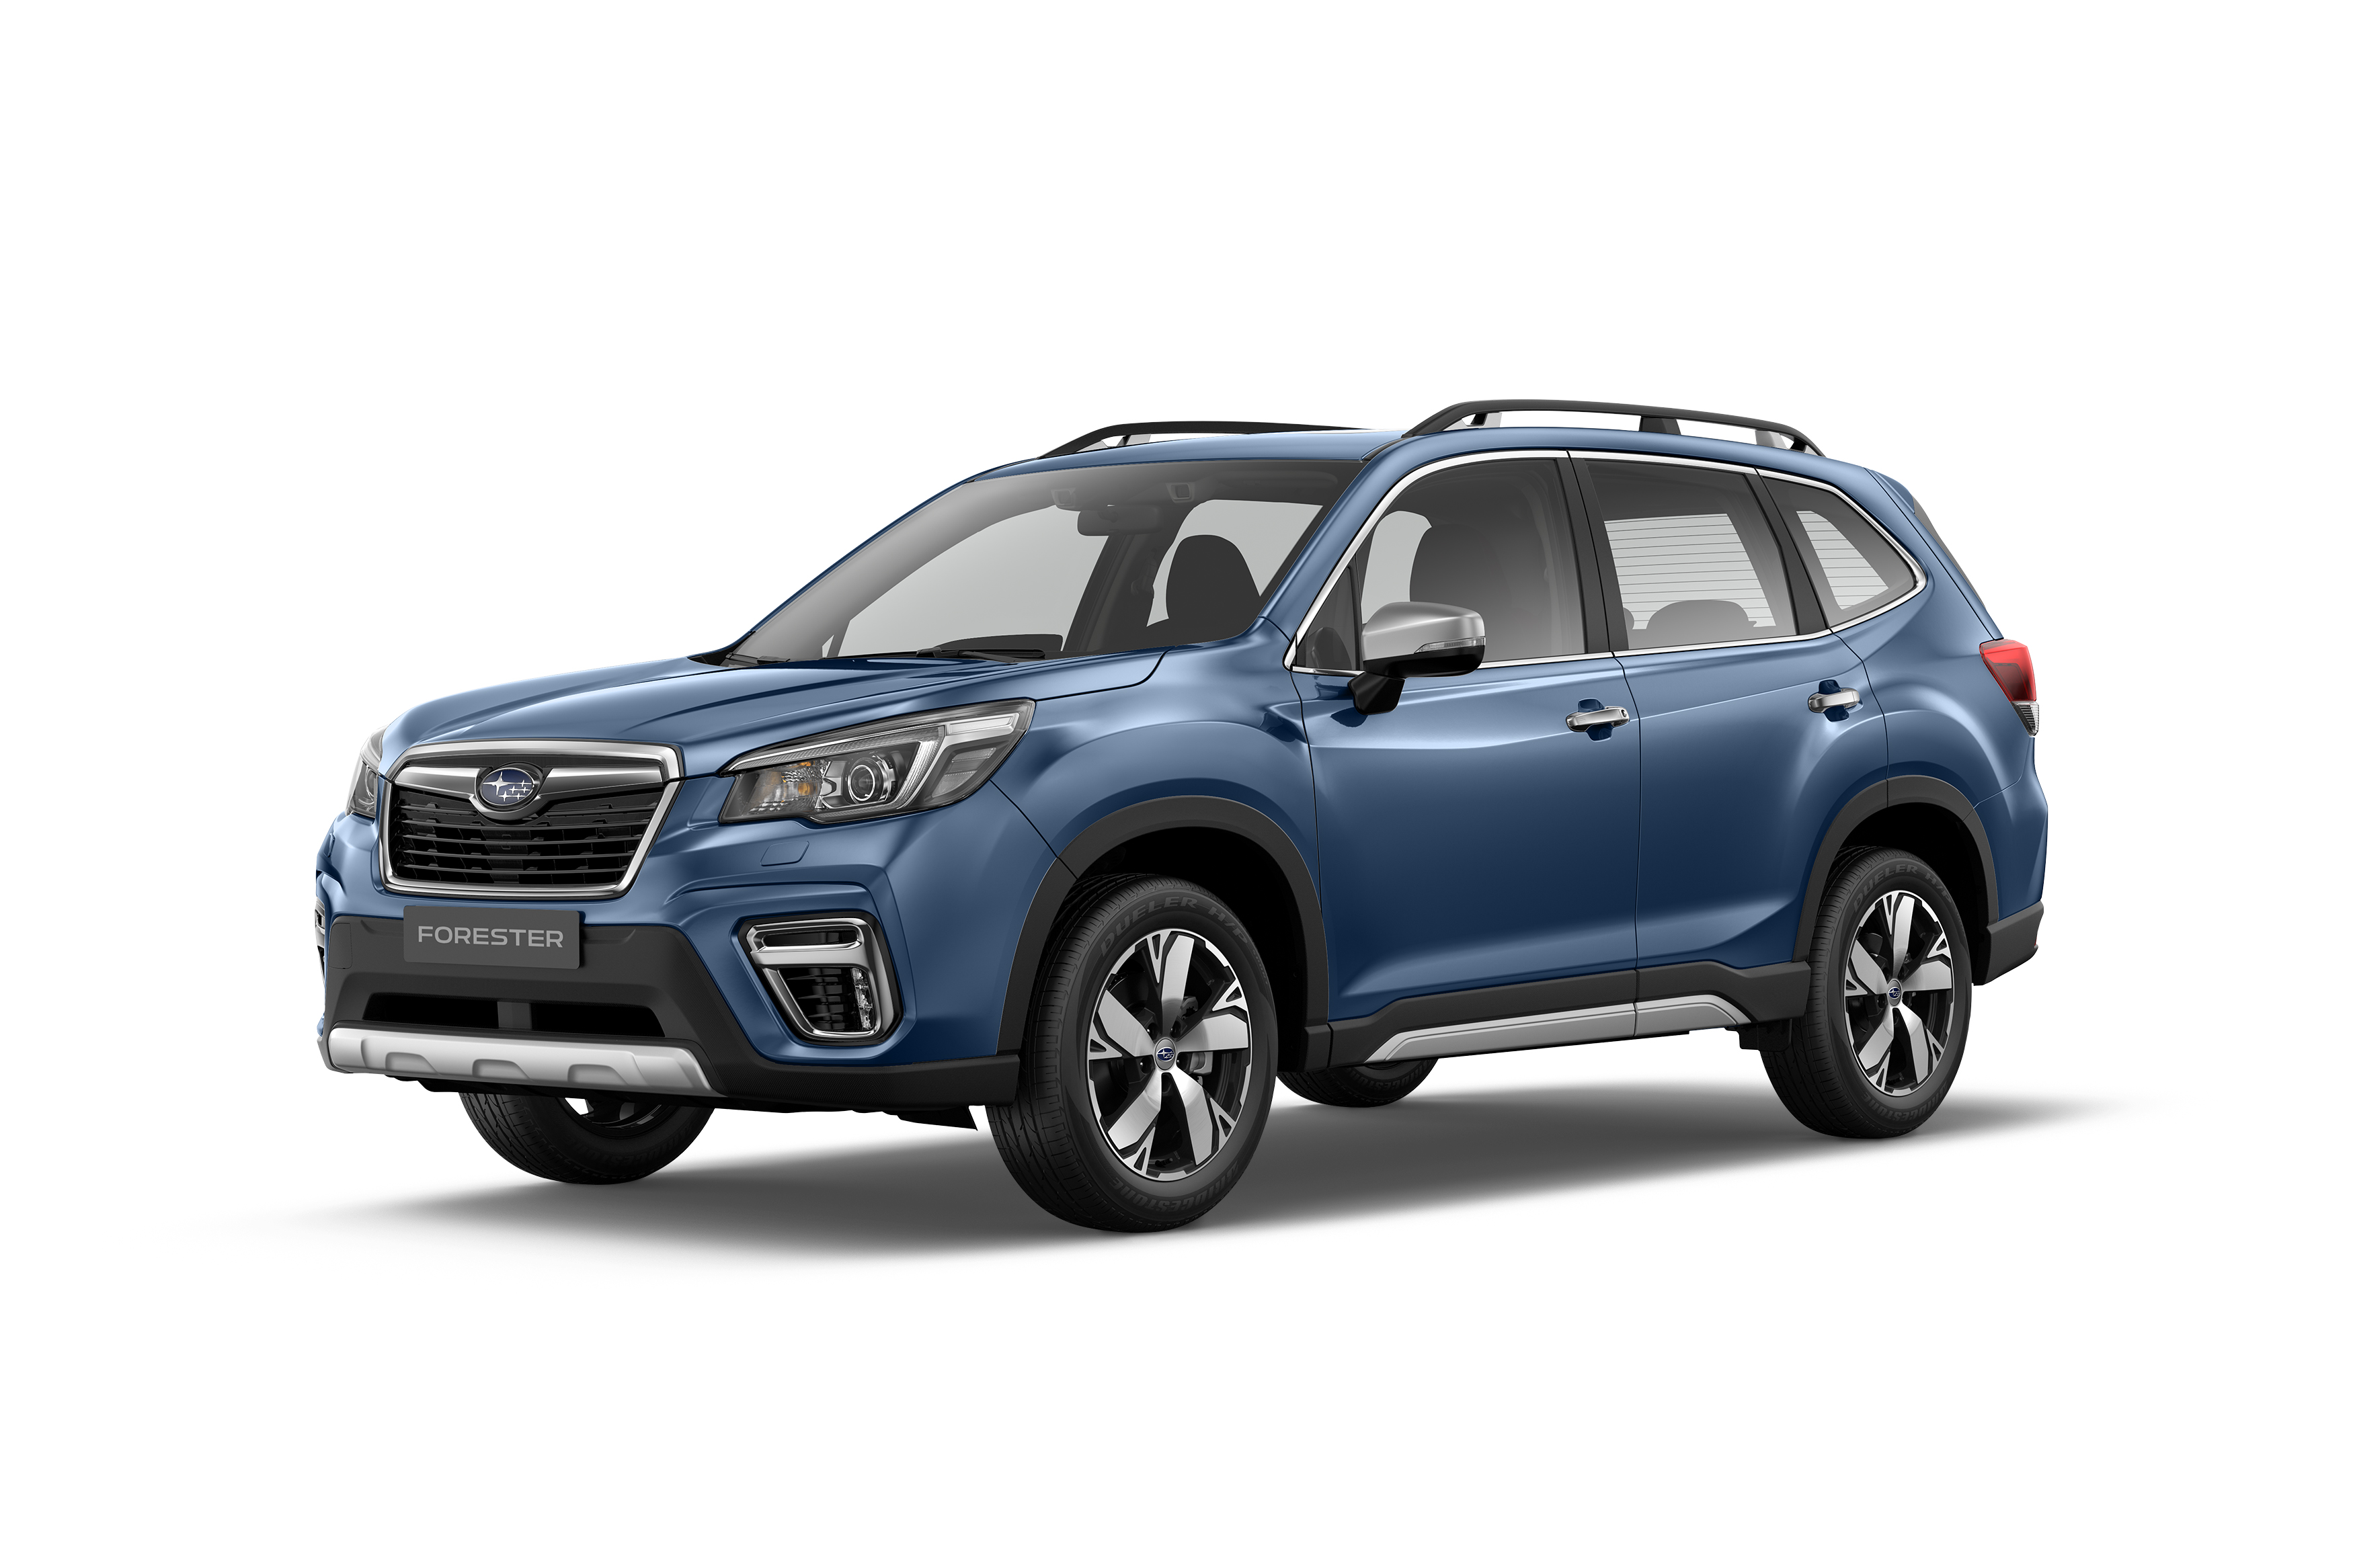 Launched All New Subaru Forester Makes Its Debut Videos Piston My